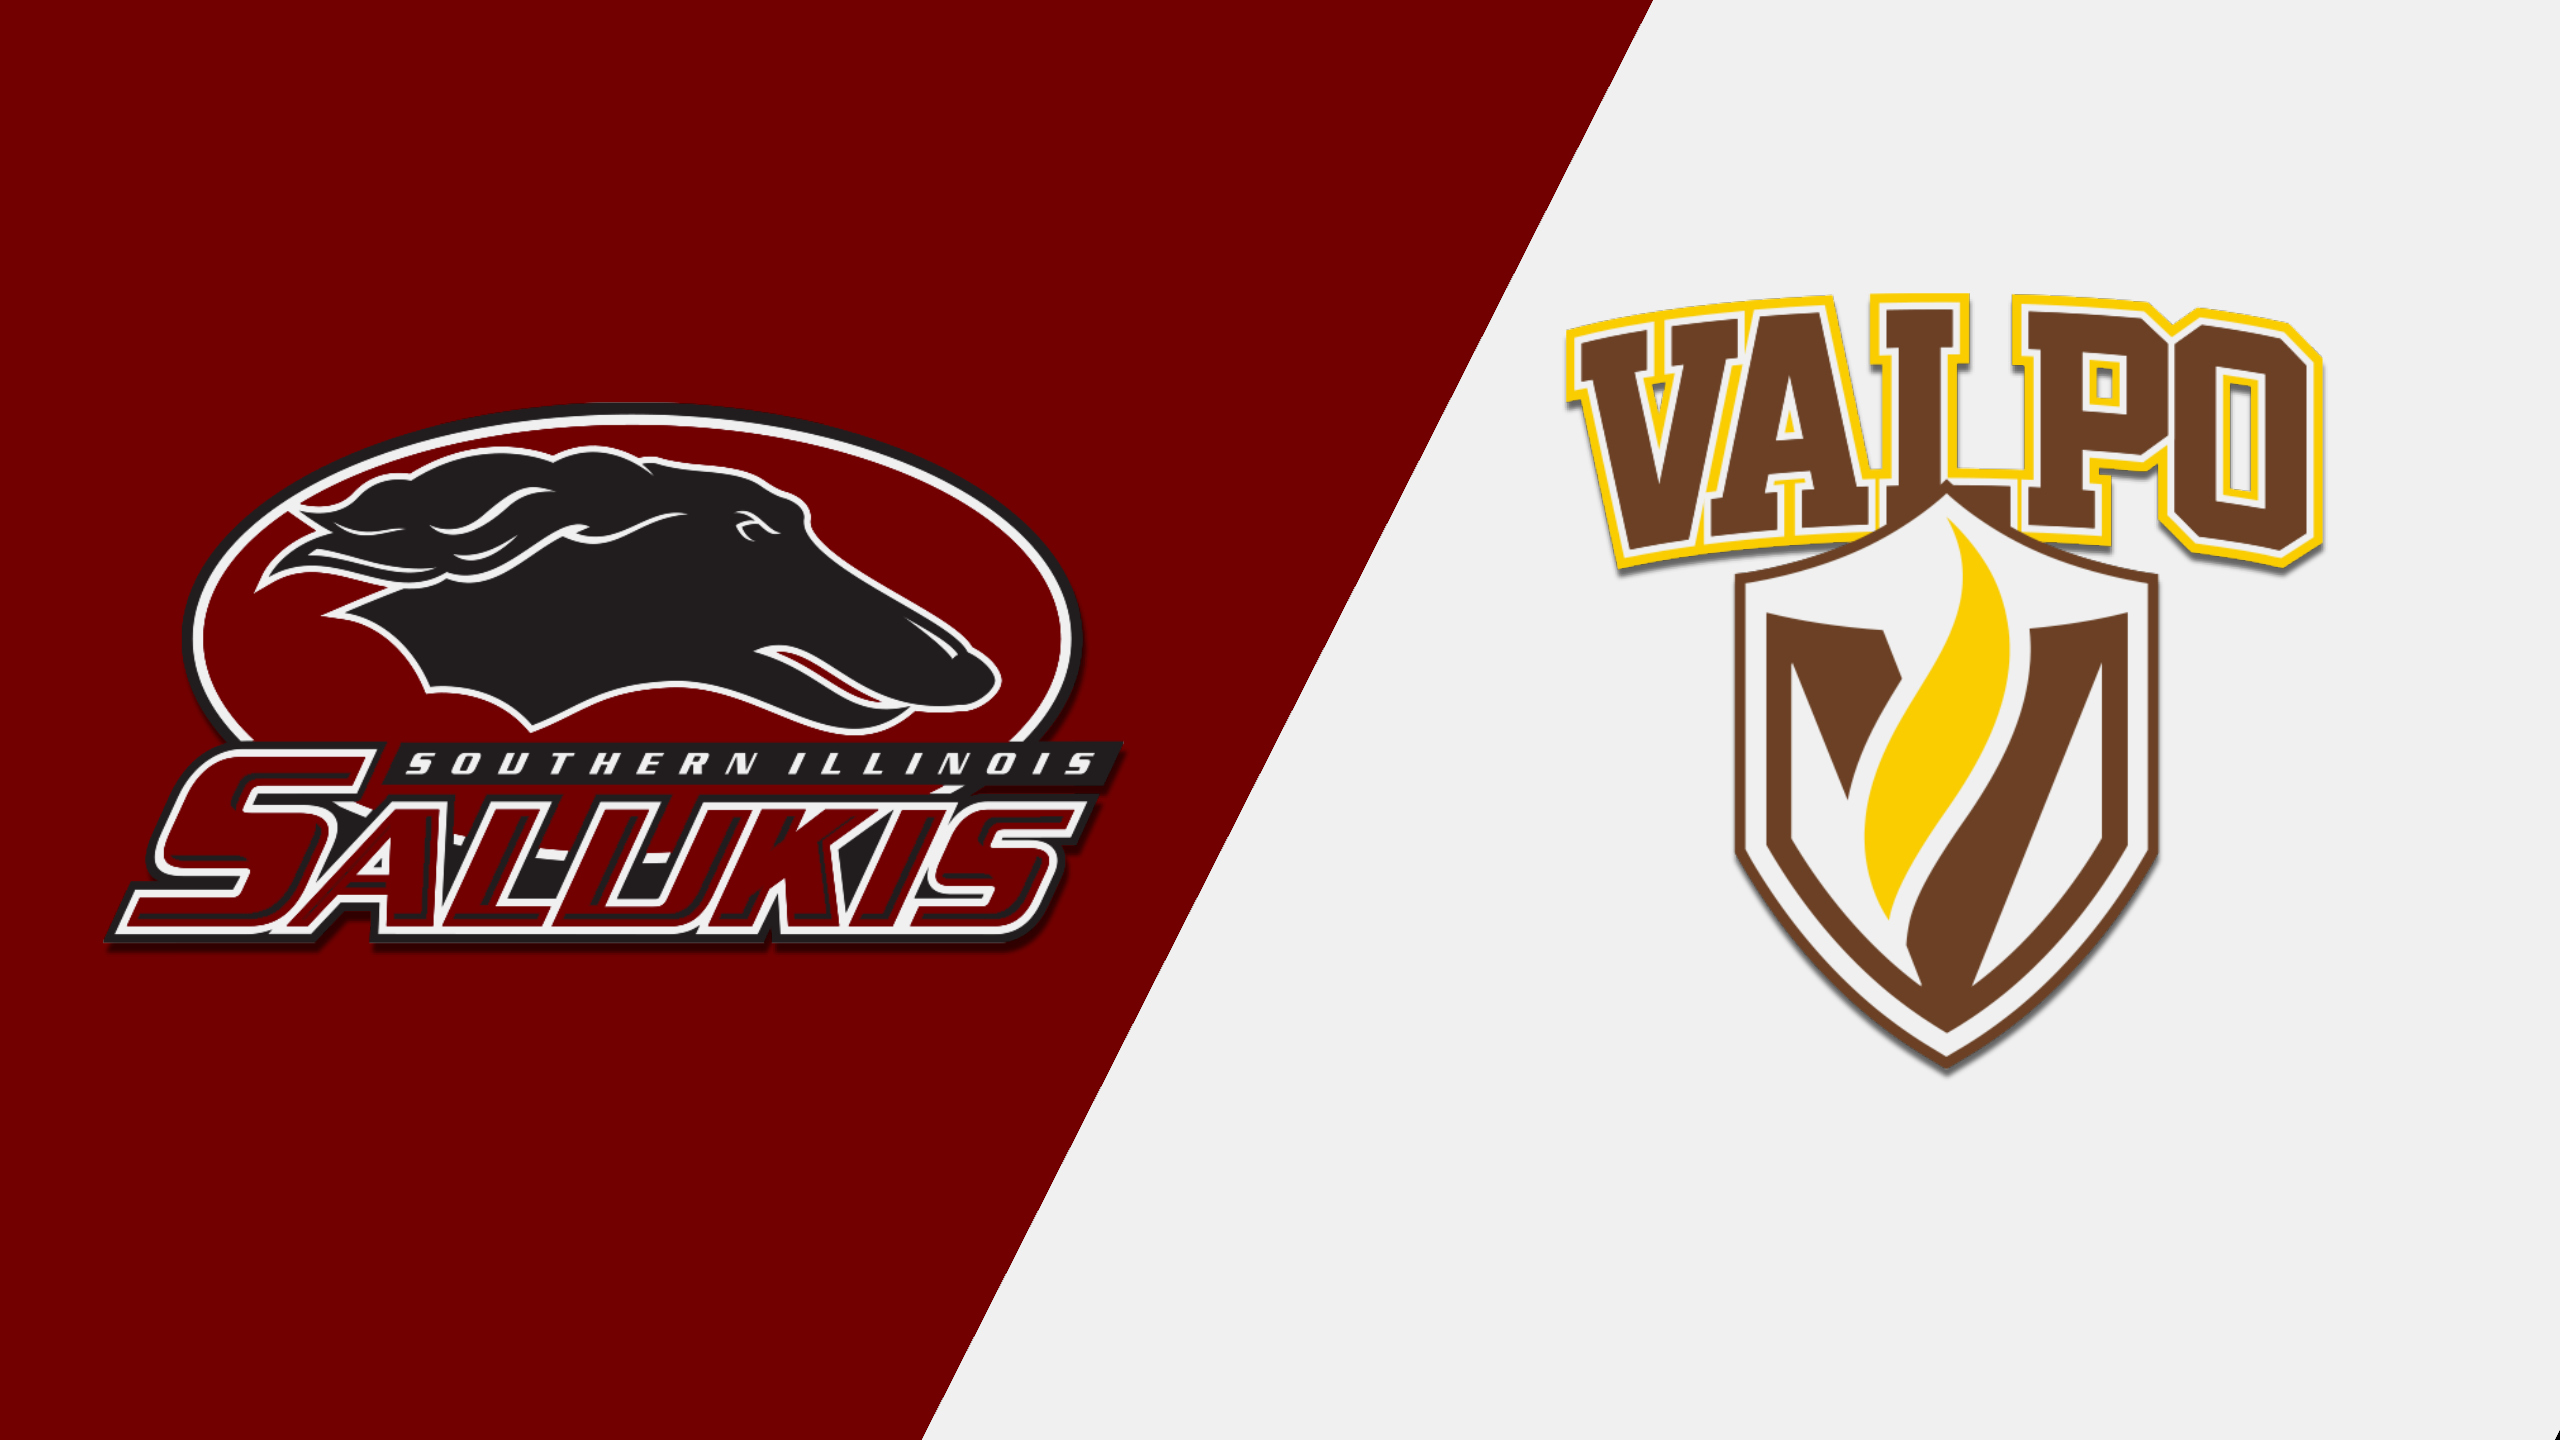 Southern Illinois vs. Valparaiso (W Basketball)